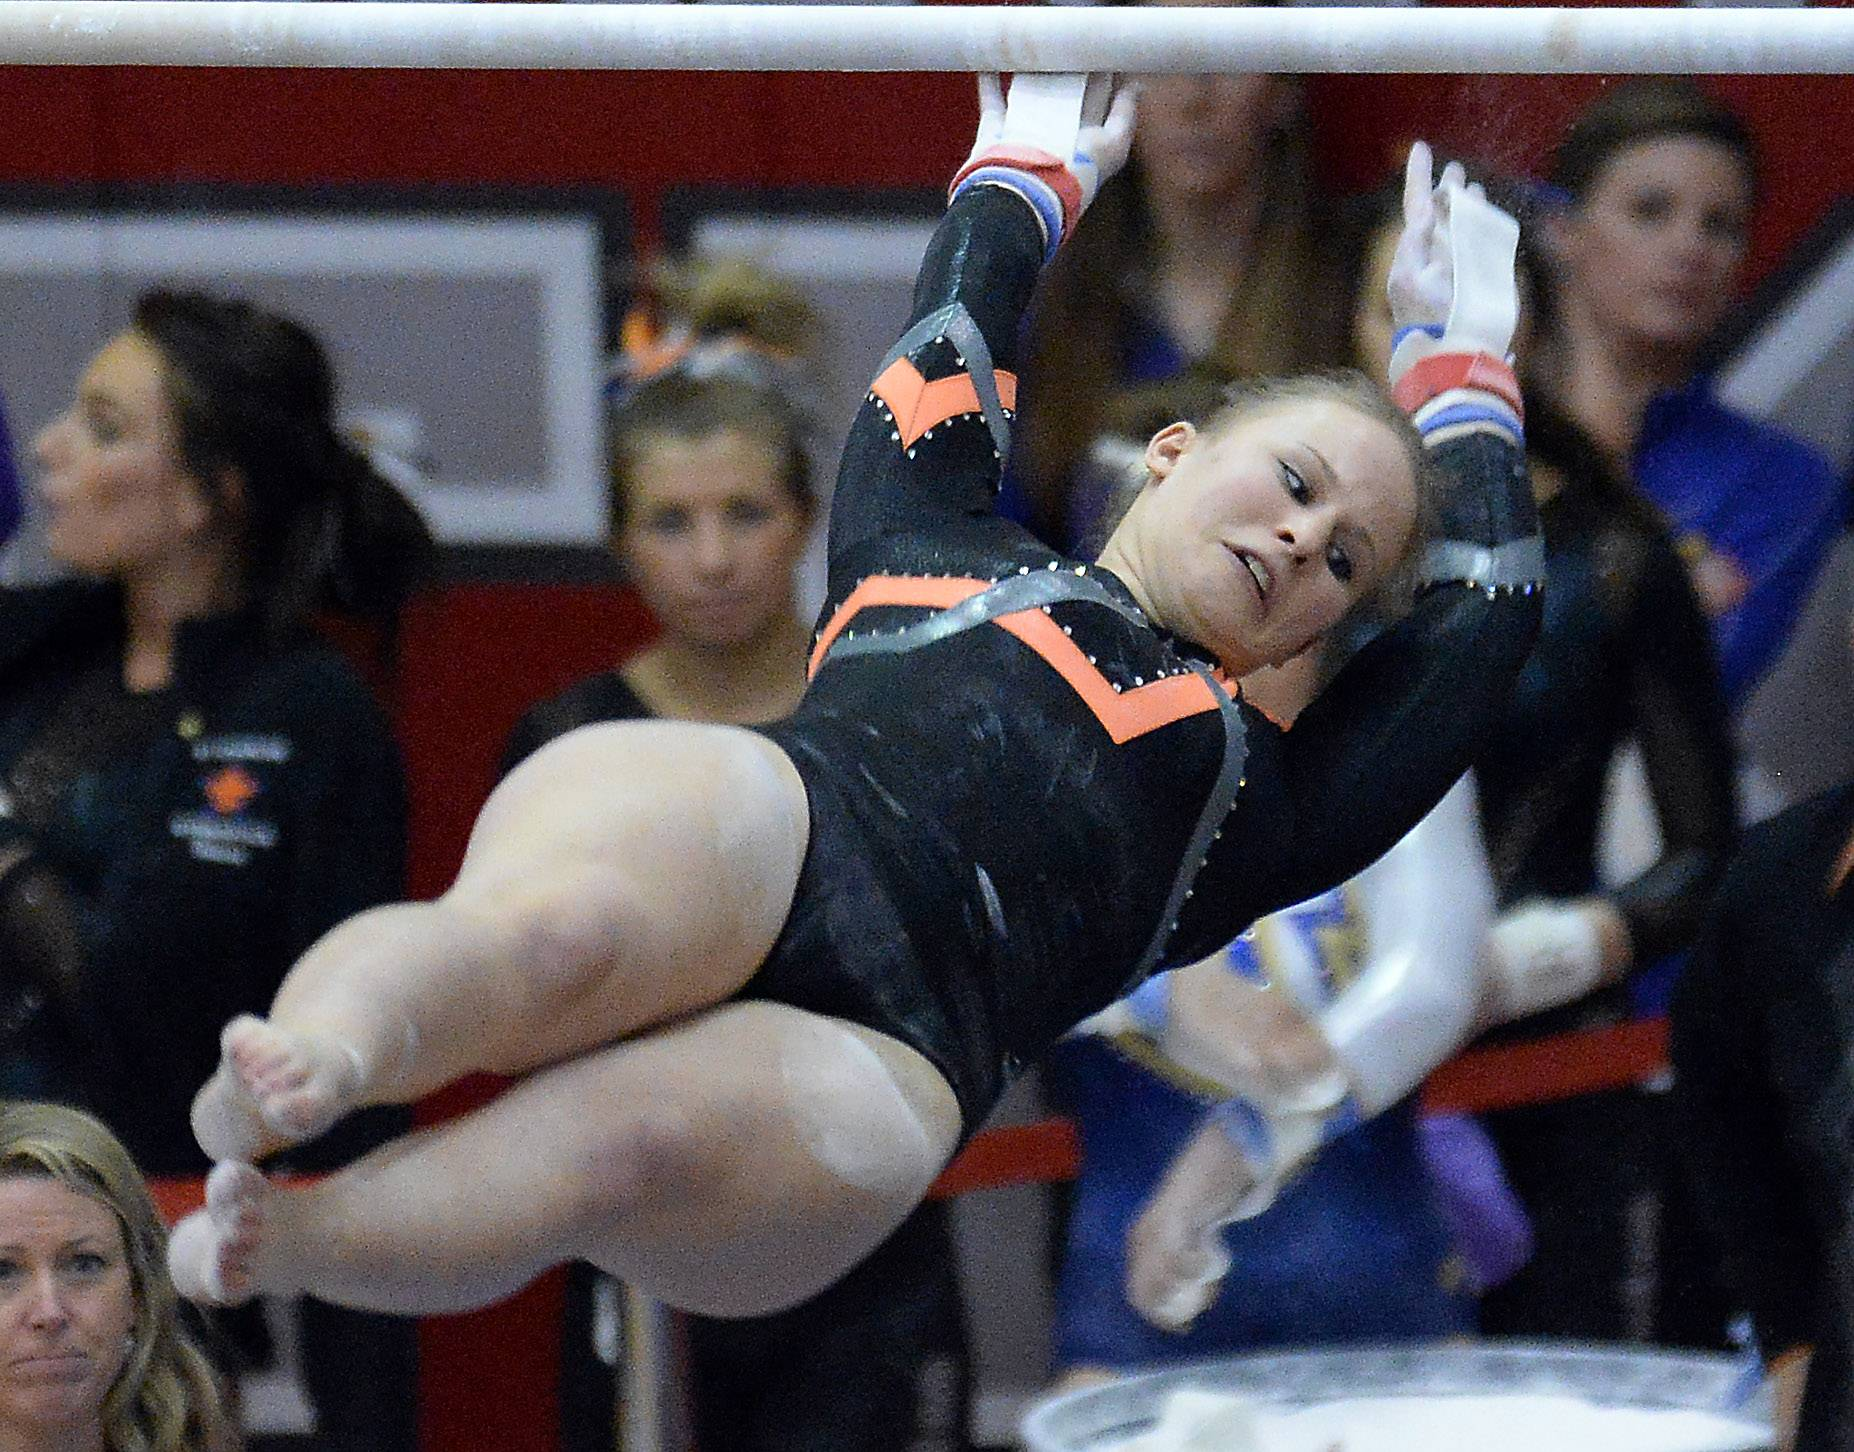 Libertyville's Mariah Lee competes on the uneven parallel bars in Friday's girls state gymnastics meet in Palatine.